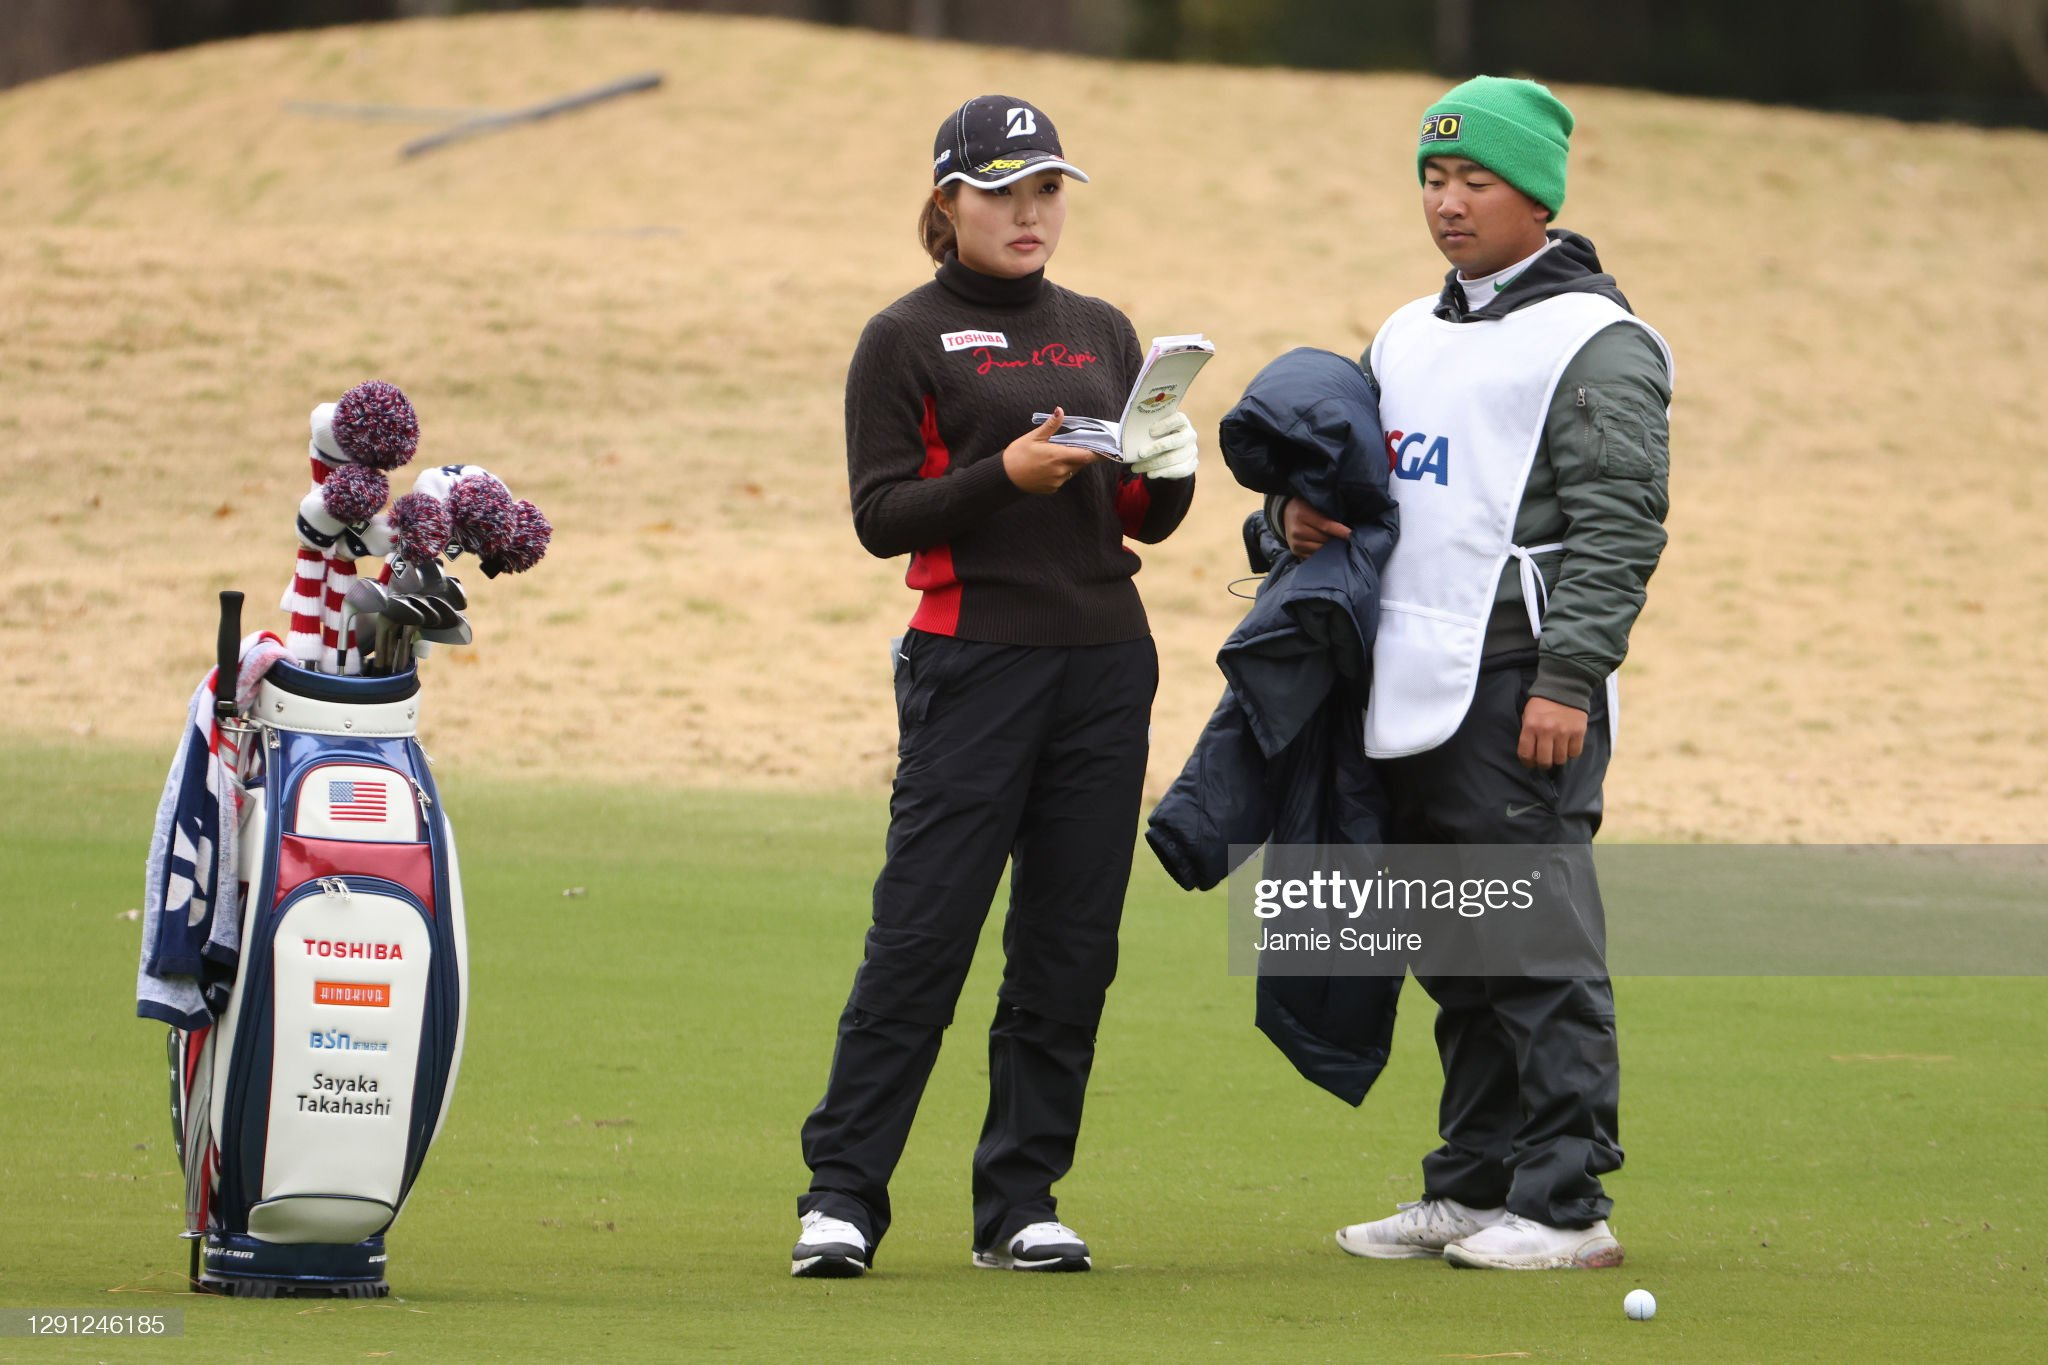 https://media.gettyimages.com/photos/sayaka-takahashi-of-japan-talks-with-her-caddie-on-the-18th-hole-the-picture-id1291246185?s=2048x2048